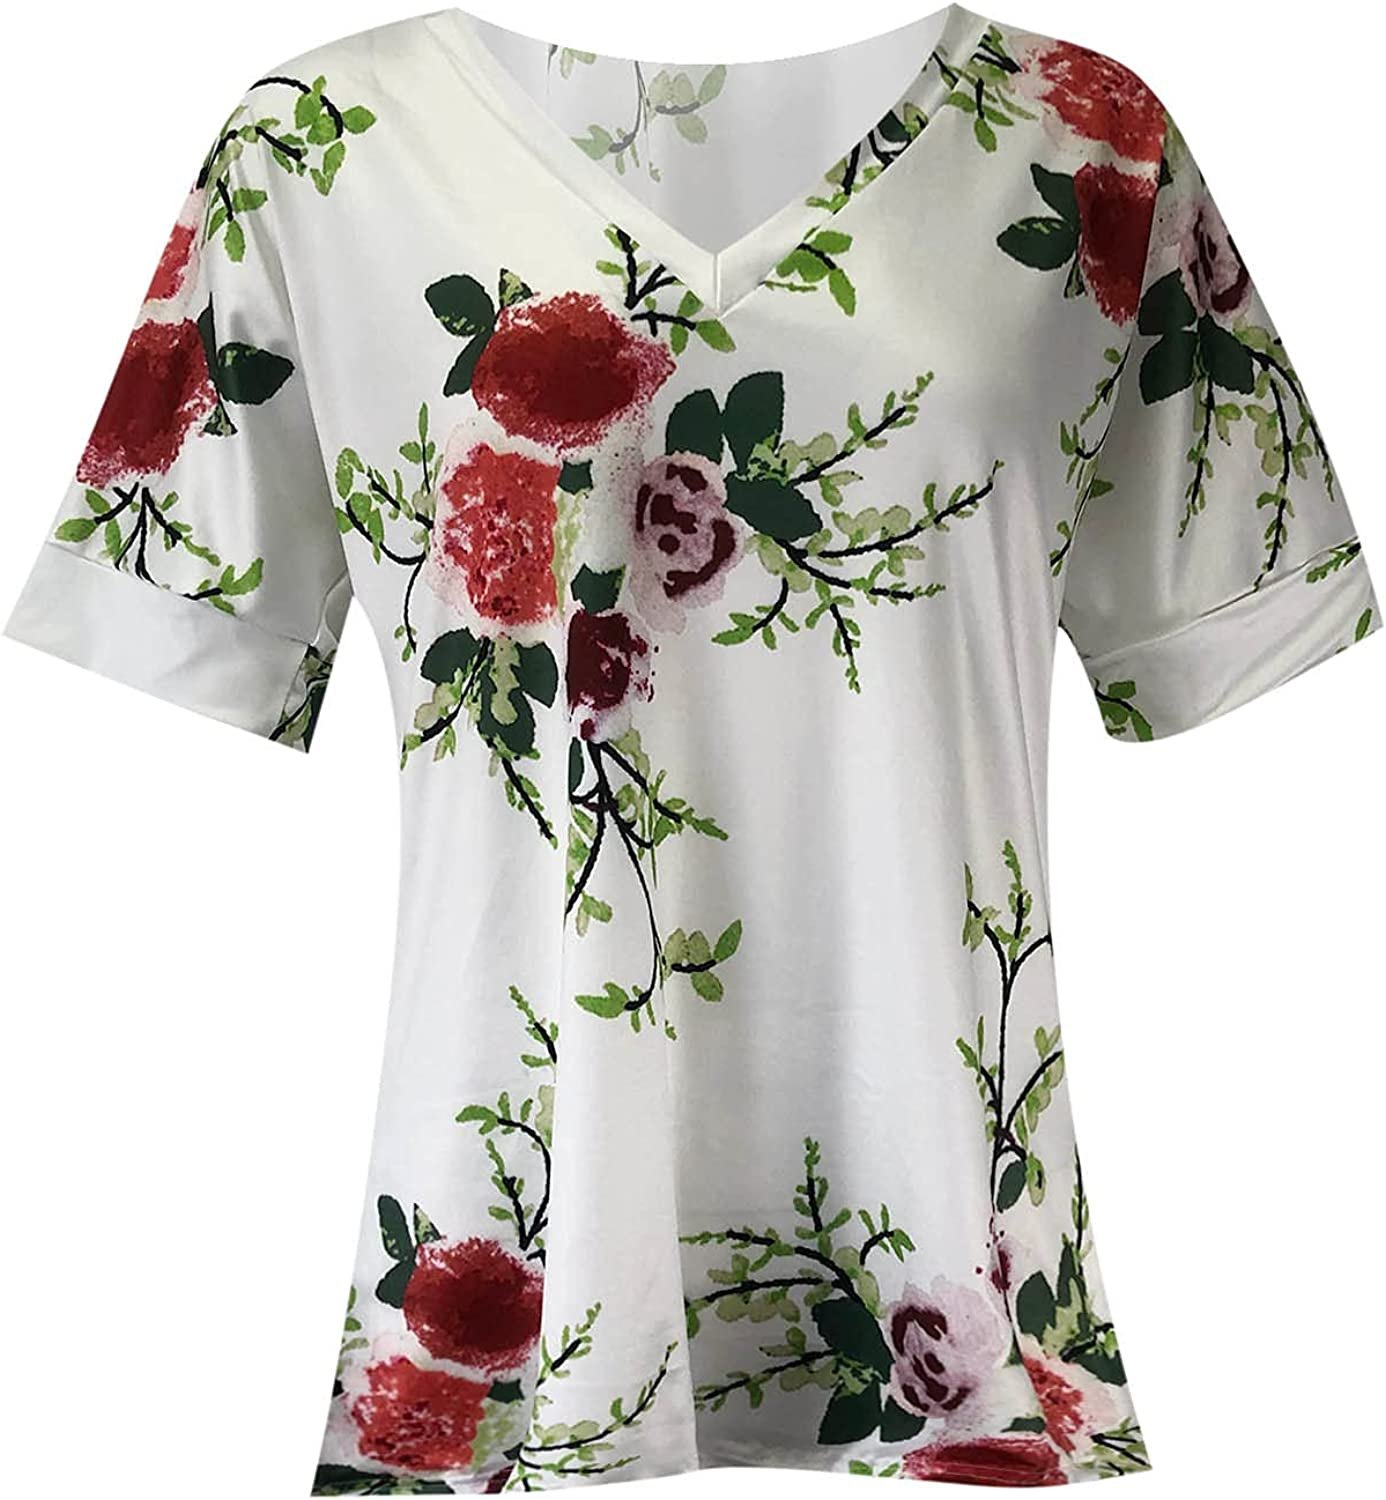 Womens Tshirts,Summer Tops for Women Tie Dye Loose T-Shirts V Neck Tees Short Sleeve Blouses Casual Pullover Shirts